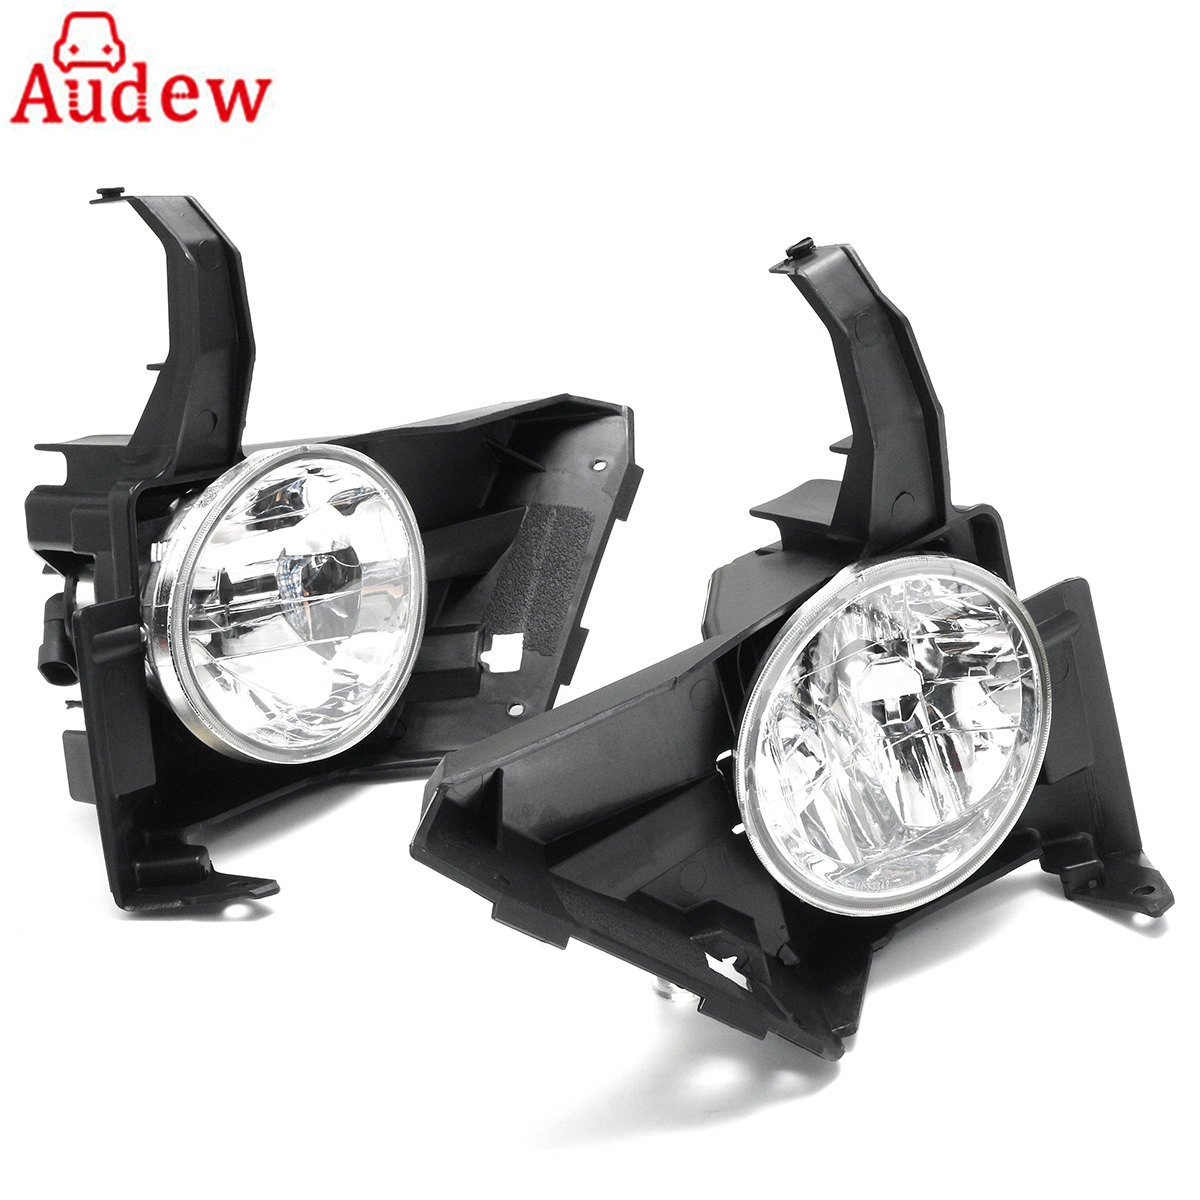 1Pair Car Bumper Lights Driving Fog /W 9006 12V 51W Bulbs For Honda/CRV 2005-2006<br>